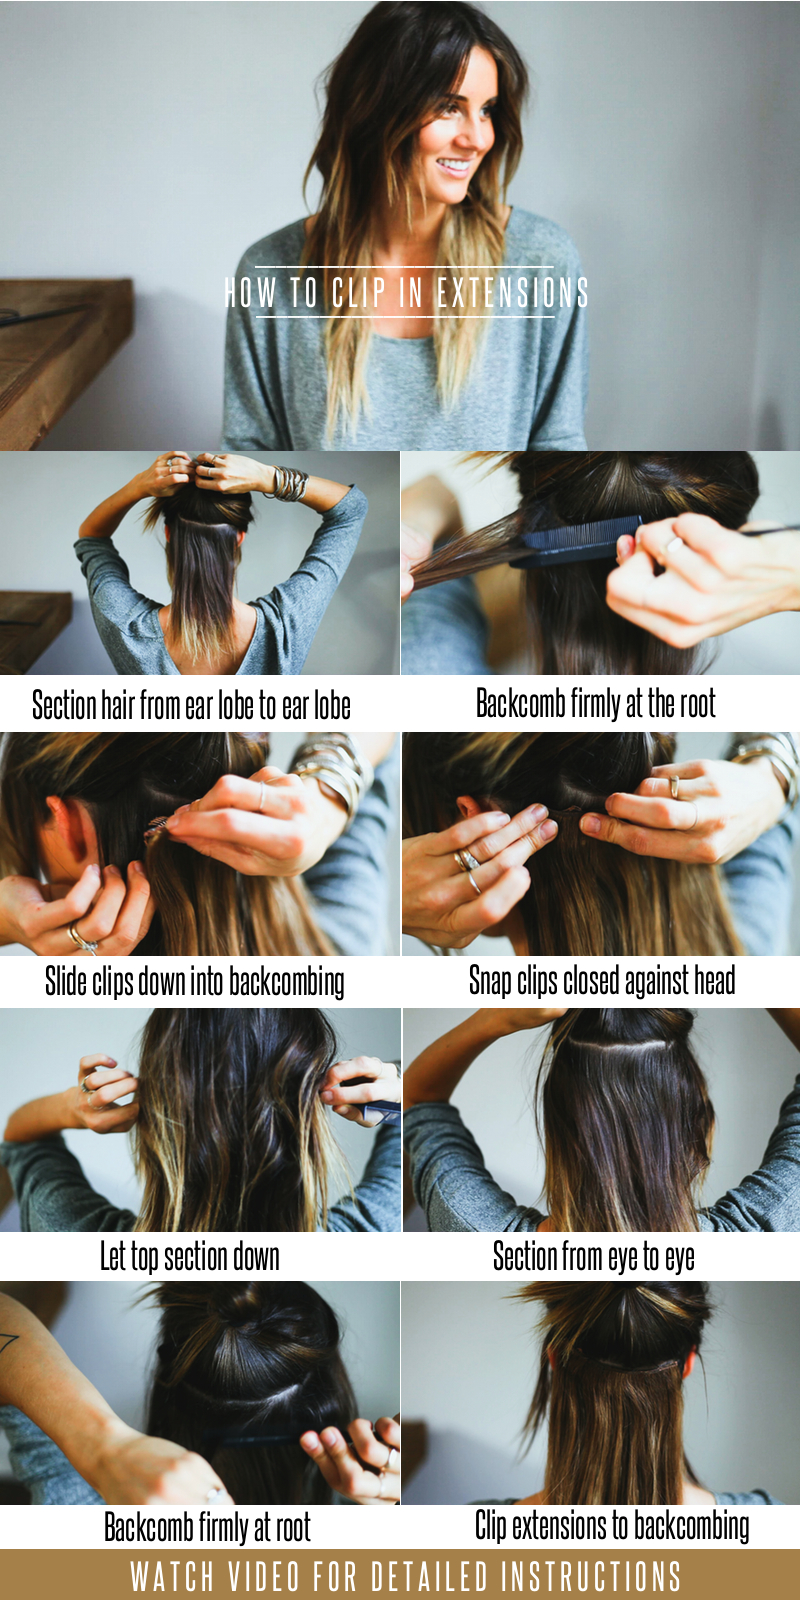 how_to_clip_in_extensions.jpg